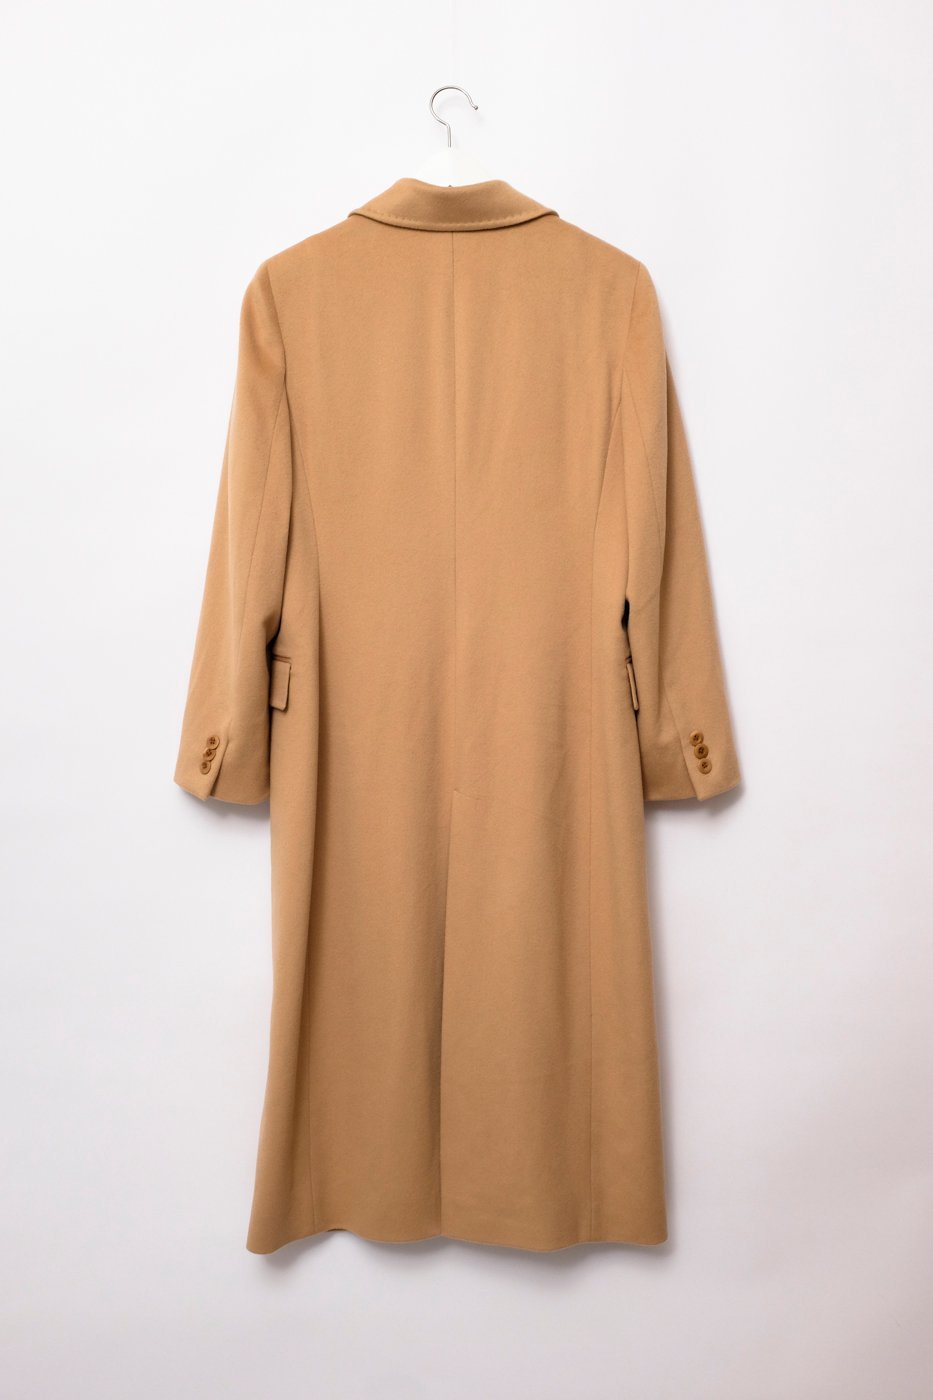 0184_PURE WOOL LIGHT CAMEL BLAZER COAT